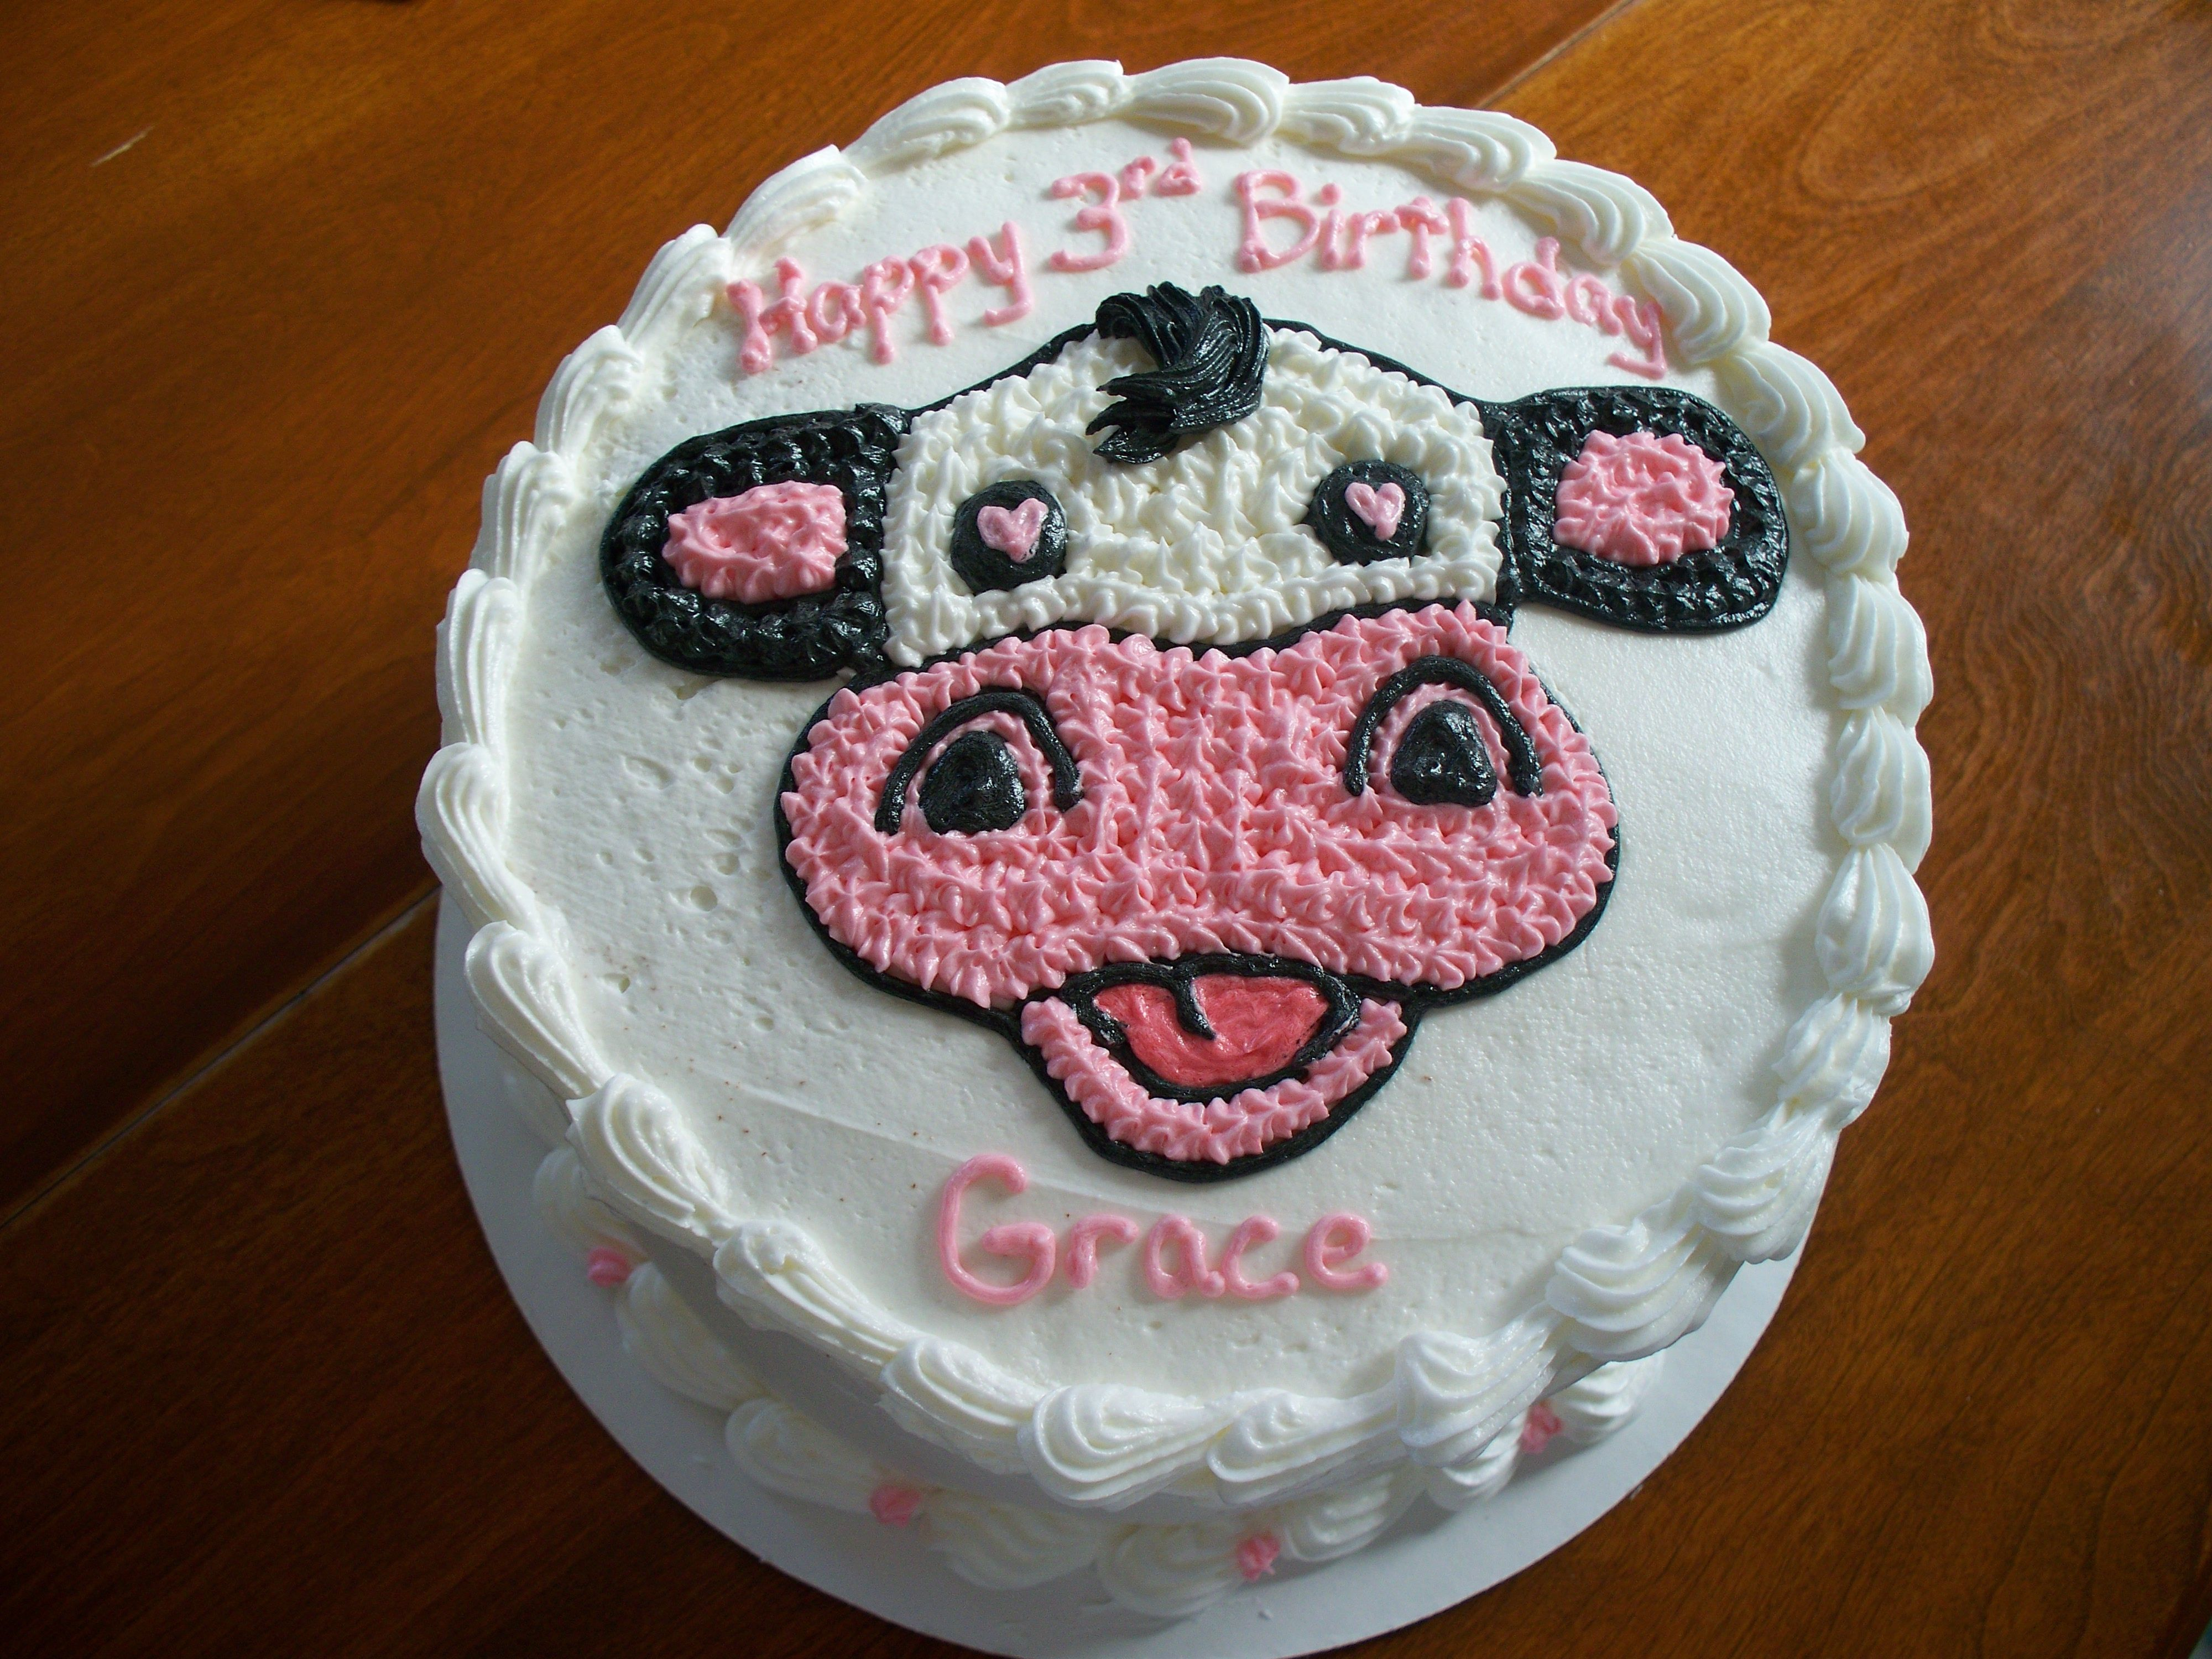 Chick Fil A Cow Birthday Cake Courtesy Of Amy Clapper Amy